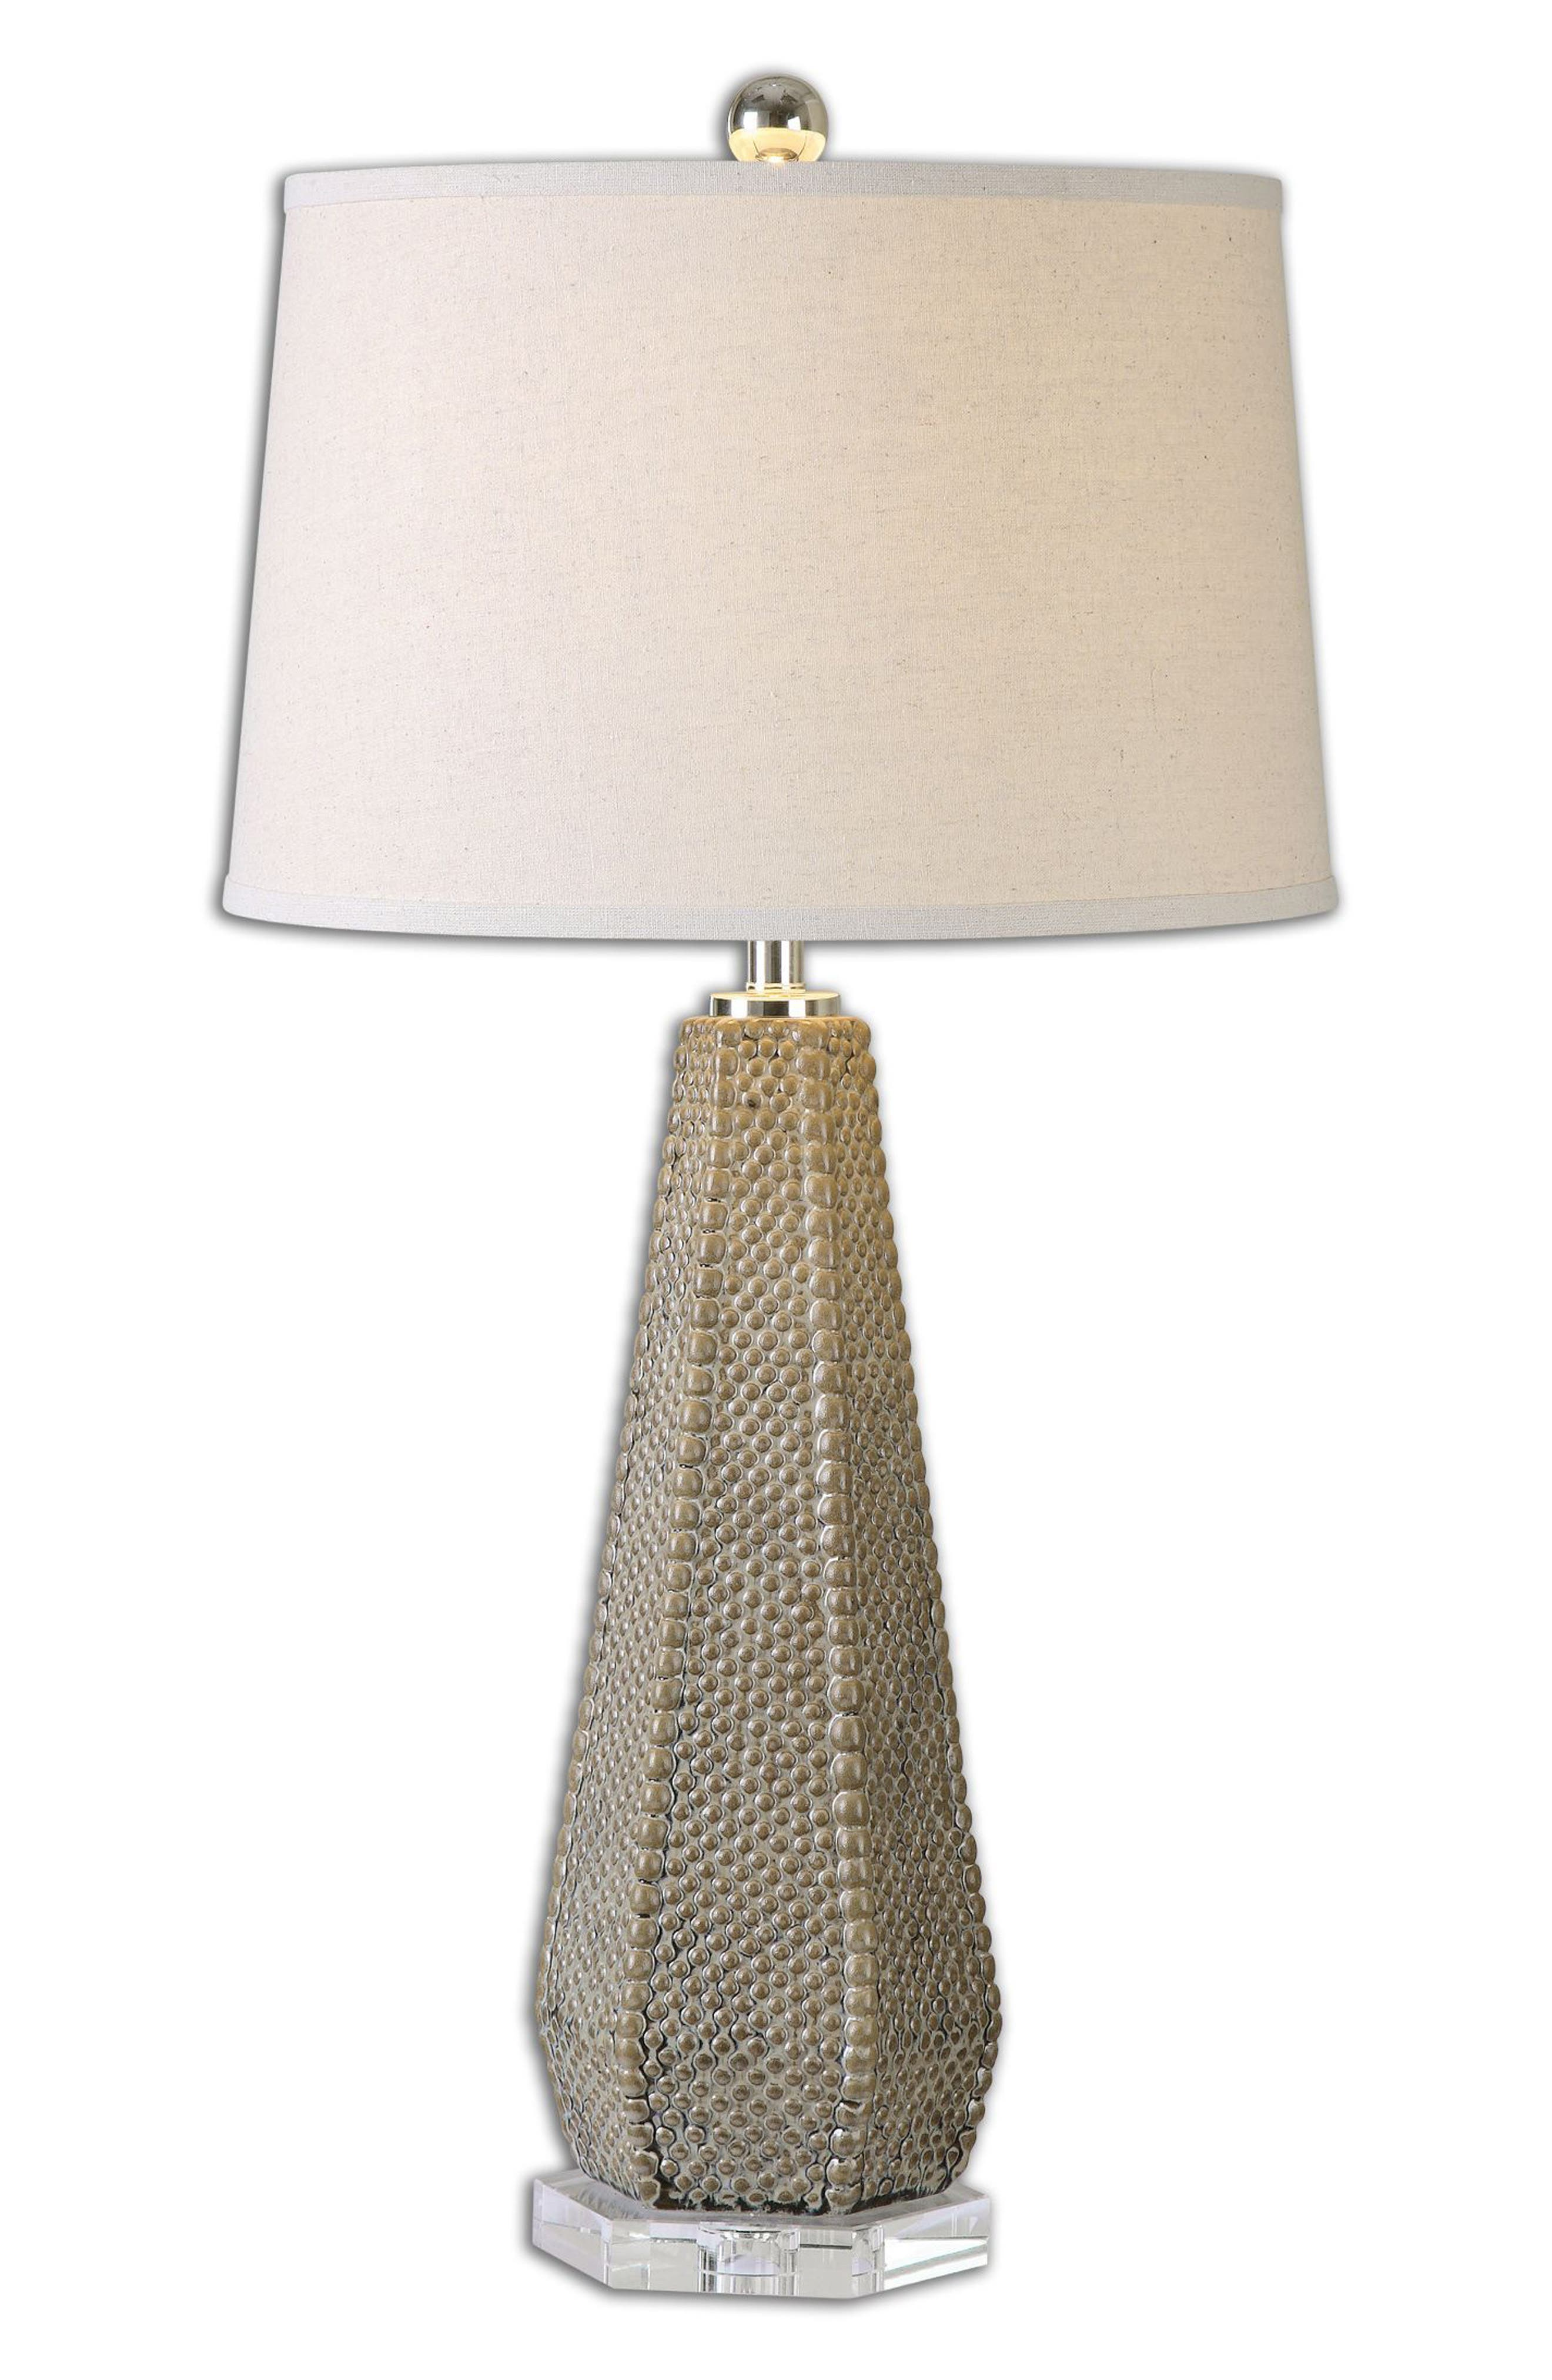 Lighting, Lamps \u0026 Fans | Nordstrom